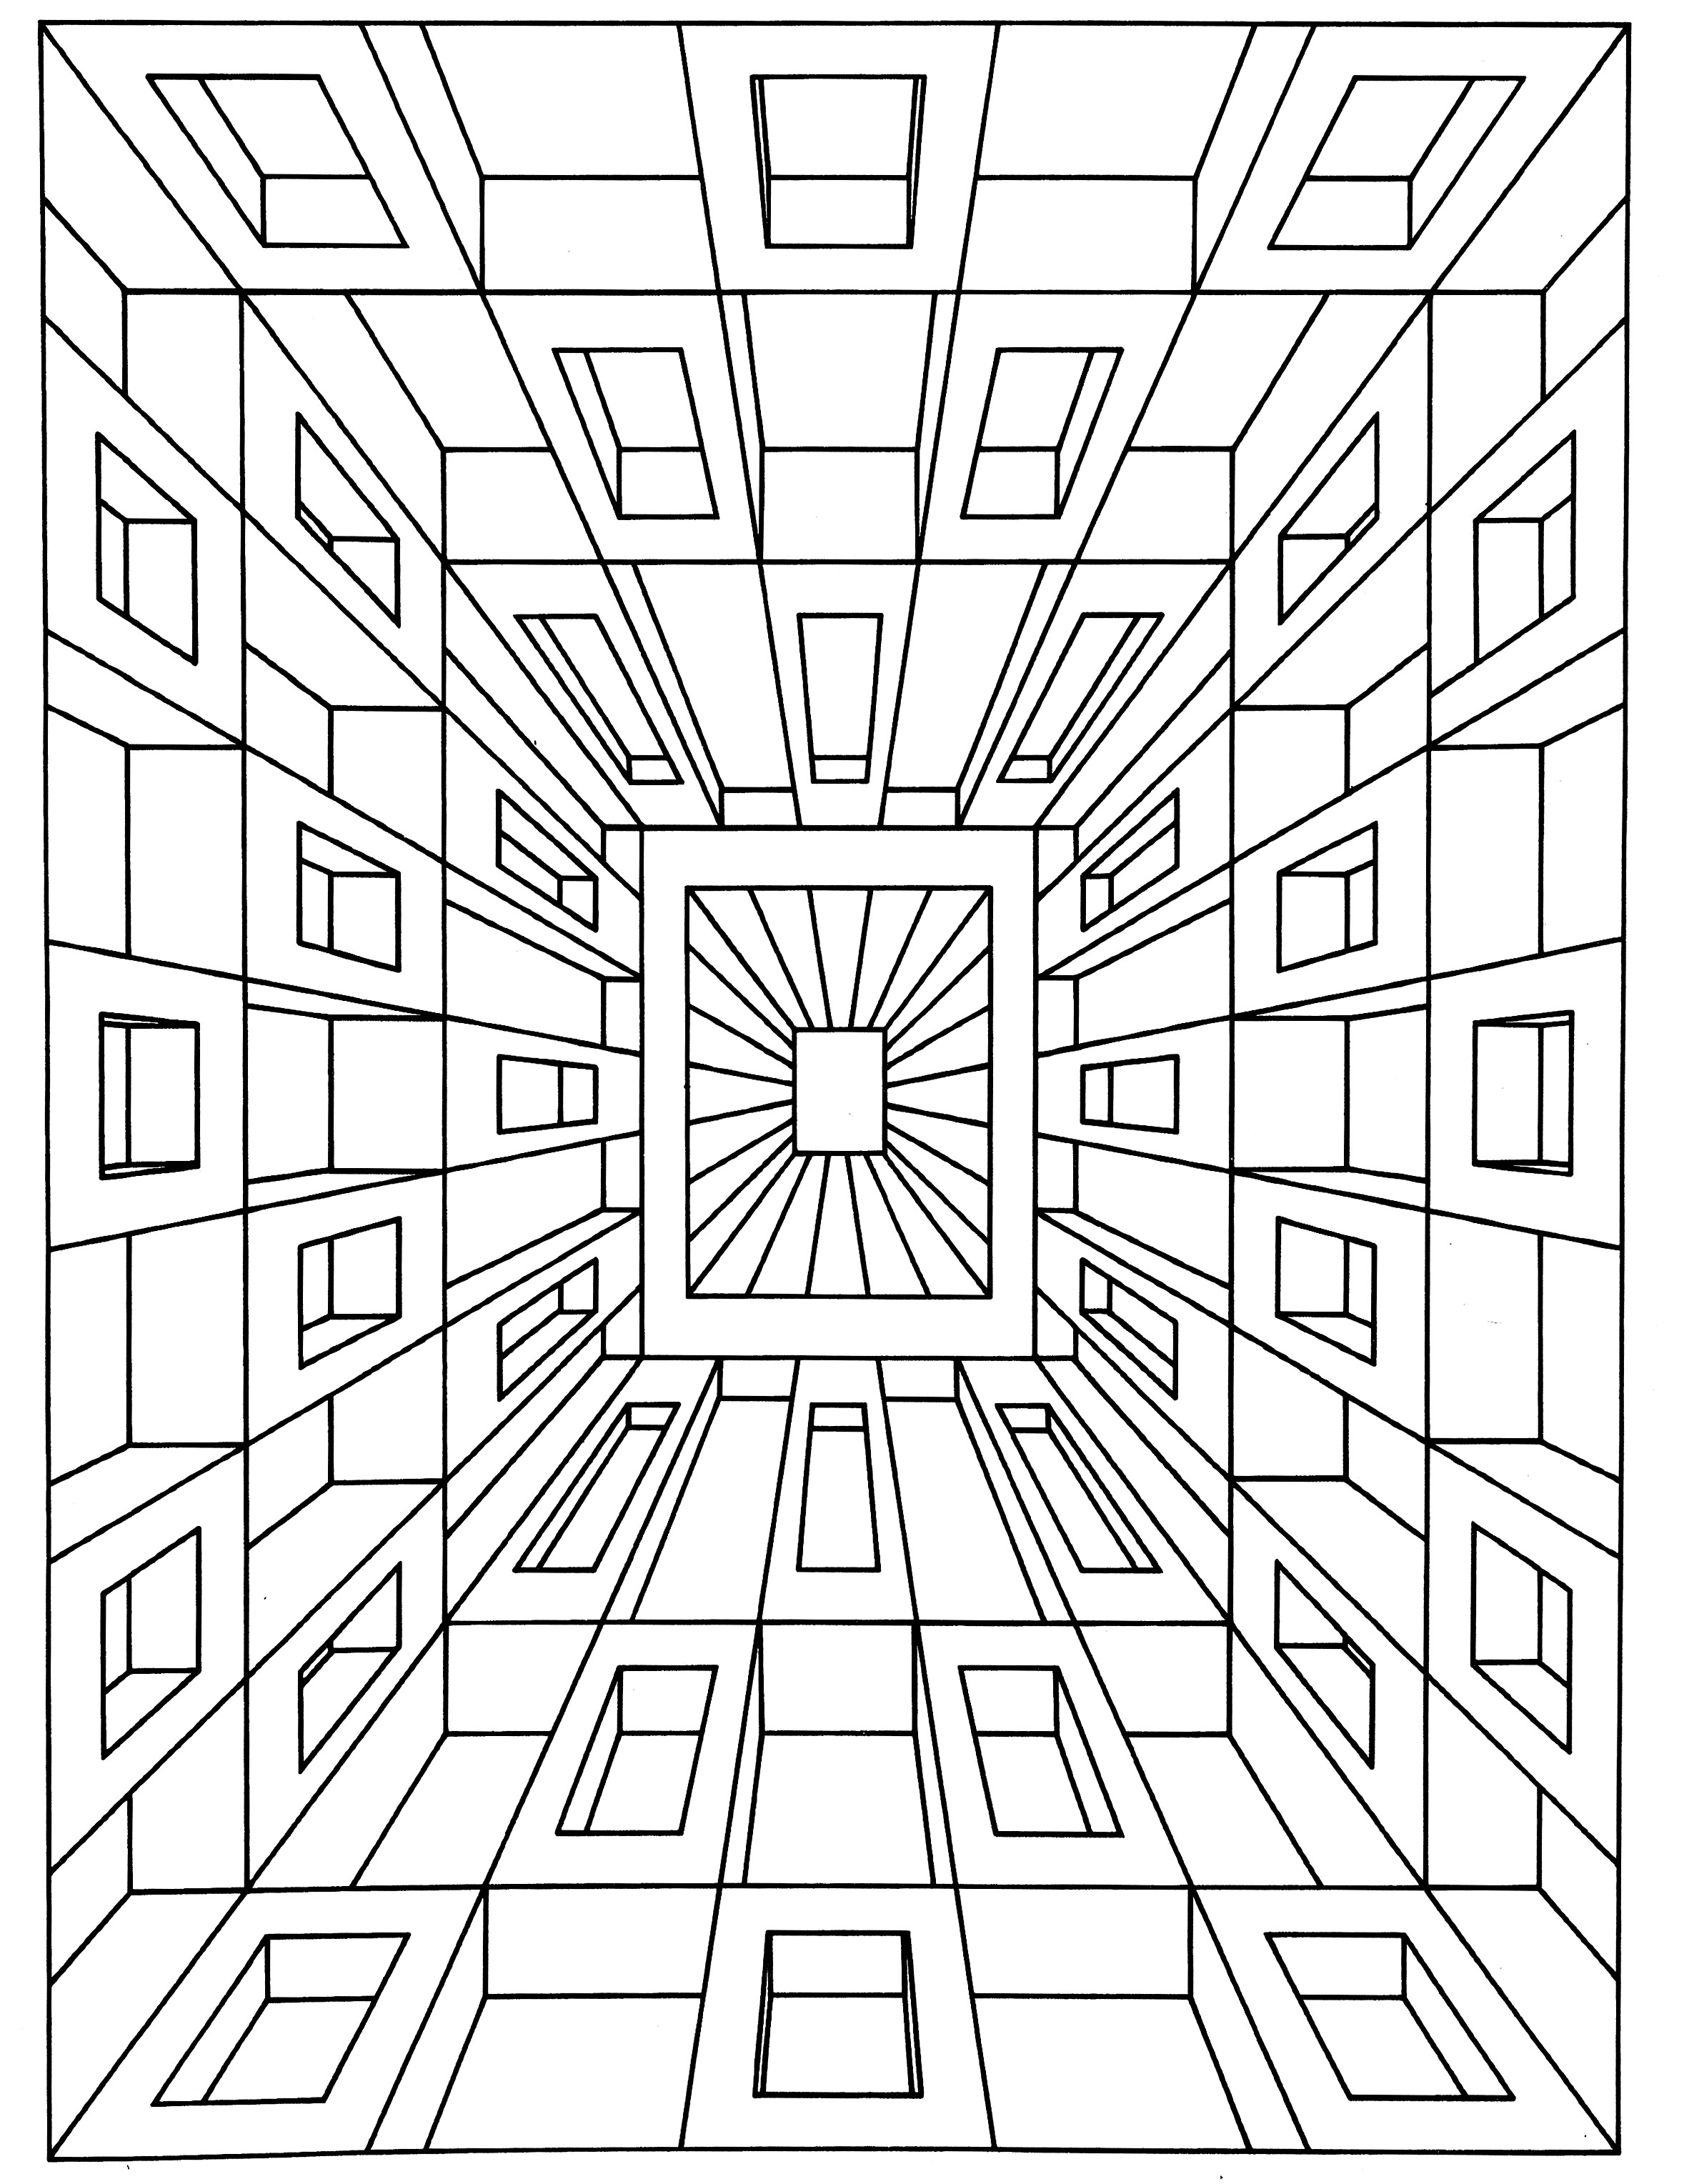 100 ideas Op Art Coloring Pages on emergingartspdx – Op Art Worksheet